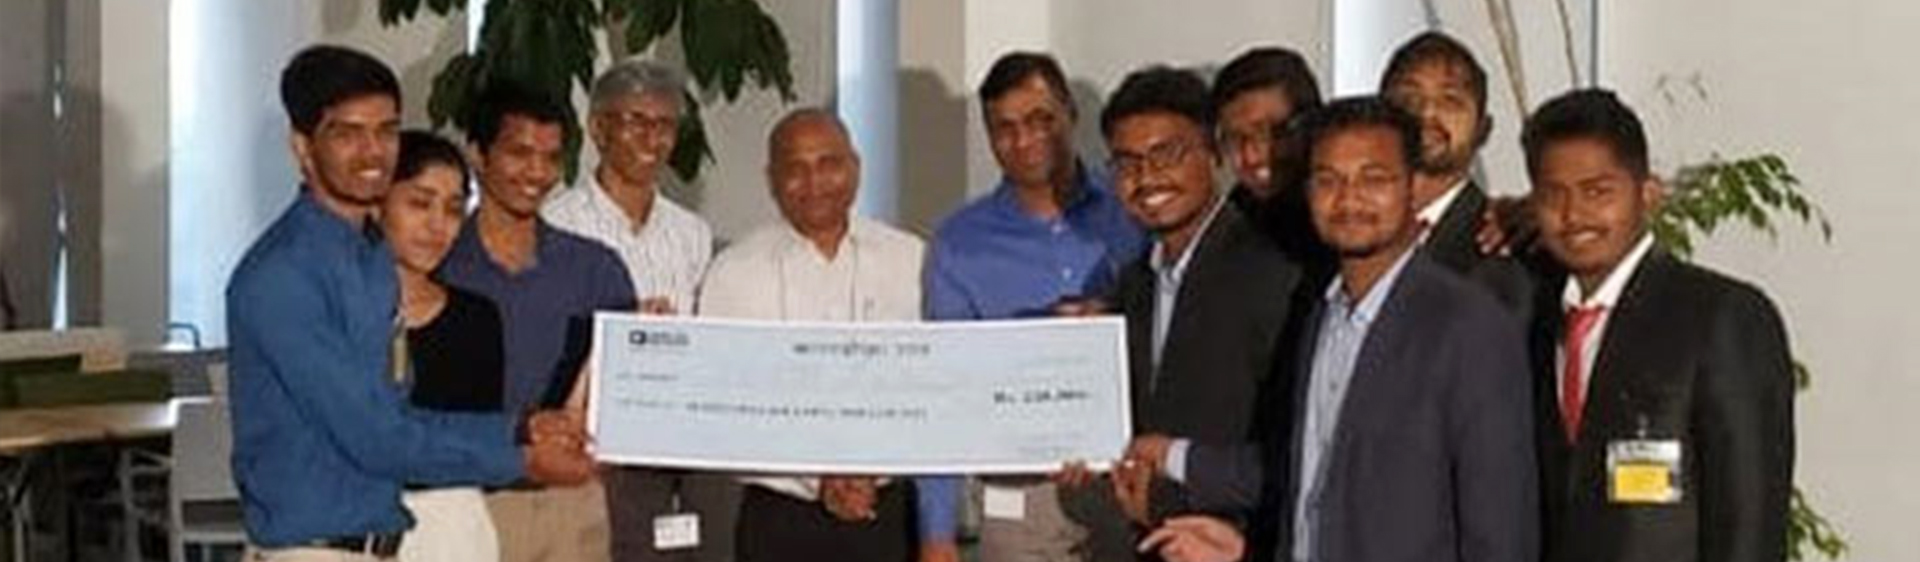 Grand Winner of Anveshan 2018 Make For India Innovation  by Analog Device Inc  at Bangalore on 6 August 2018